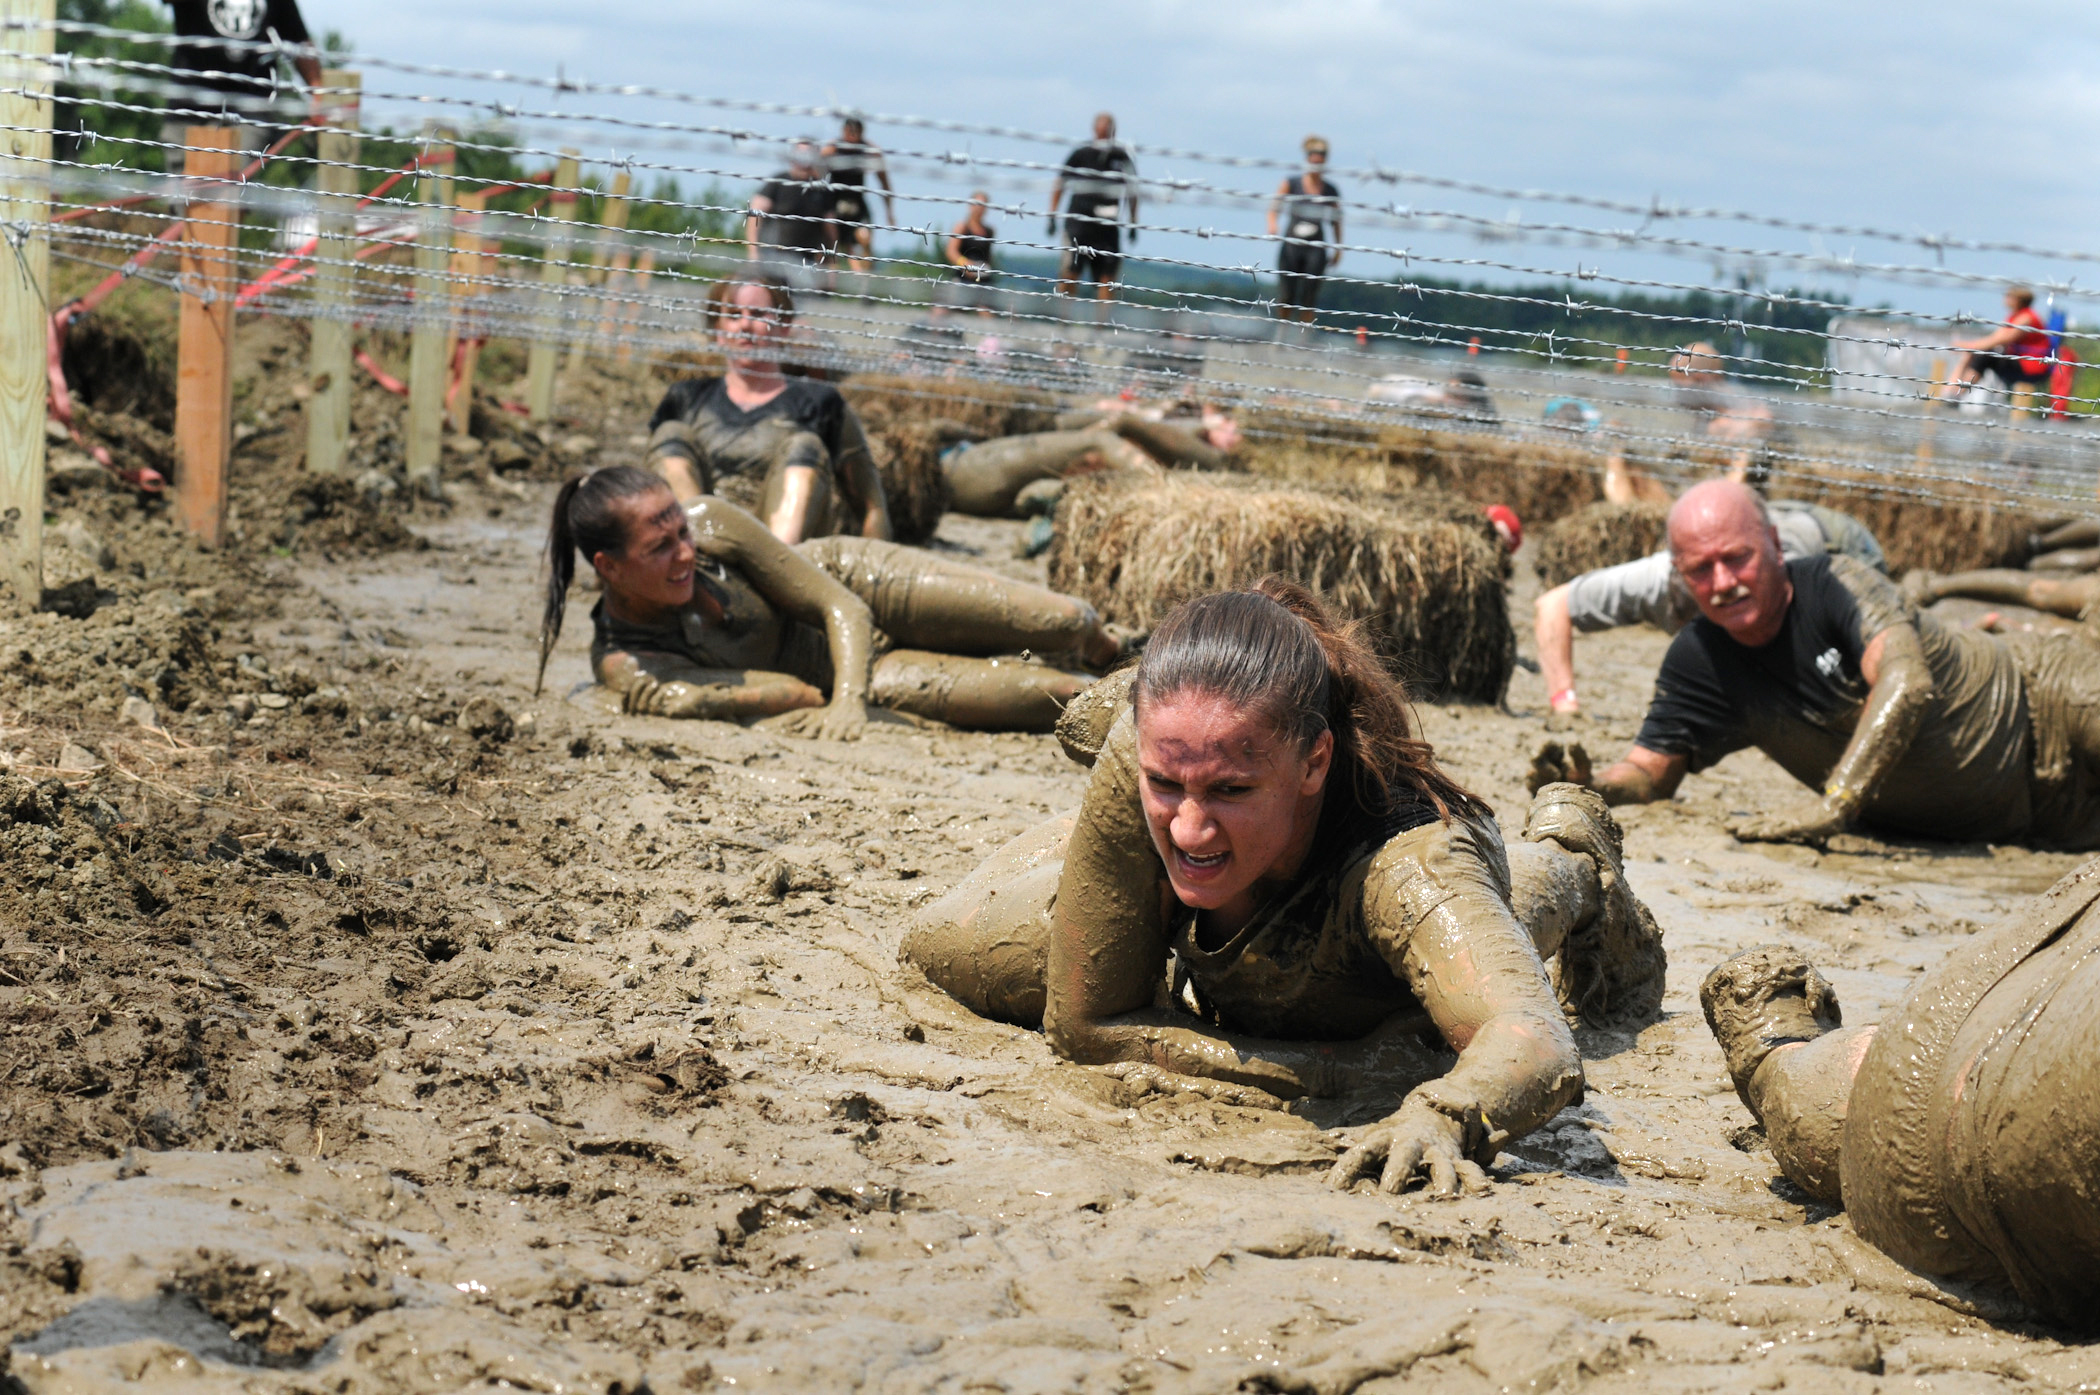 102nd Intelligence Wing members compete in Spartan Race